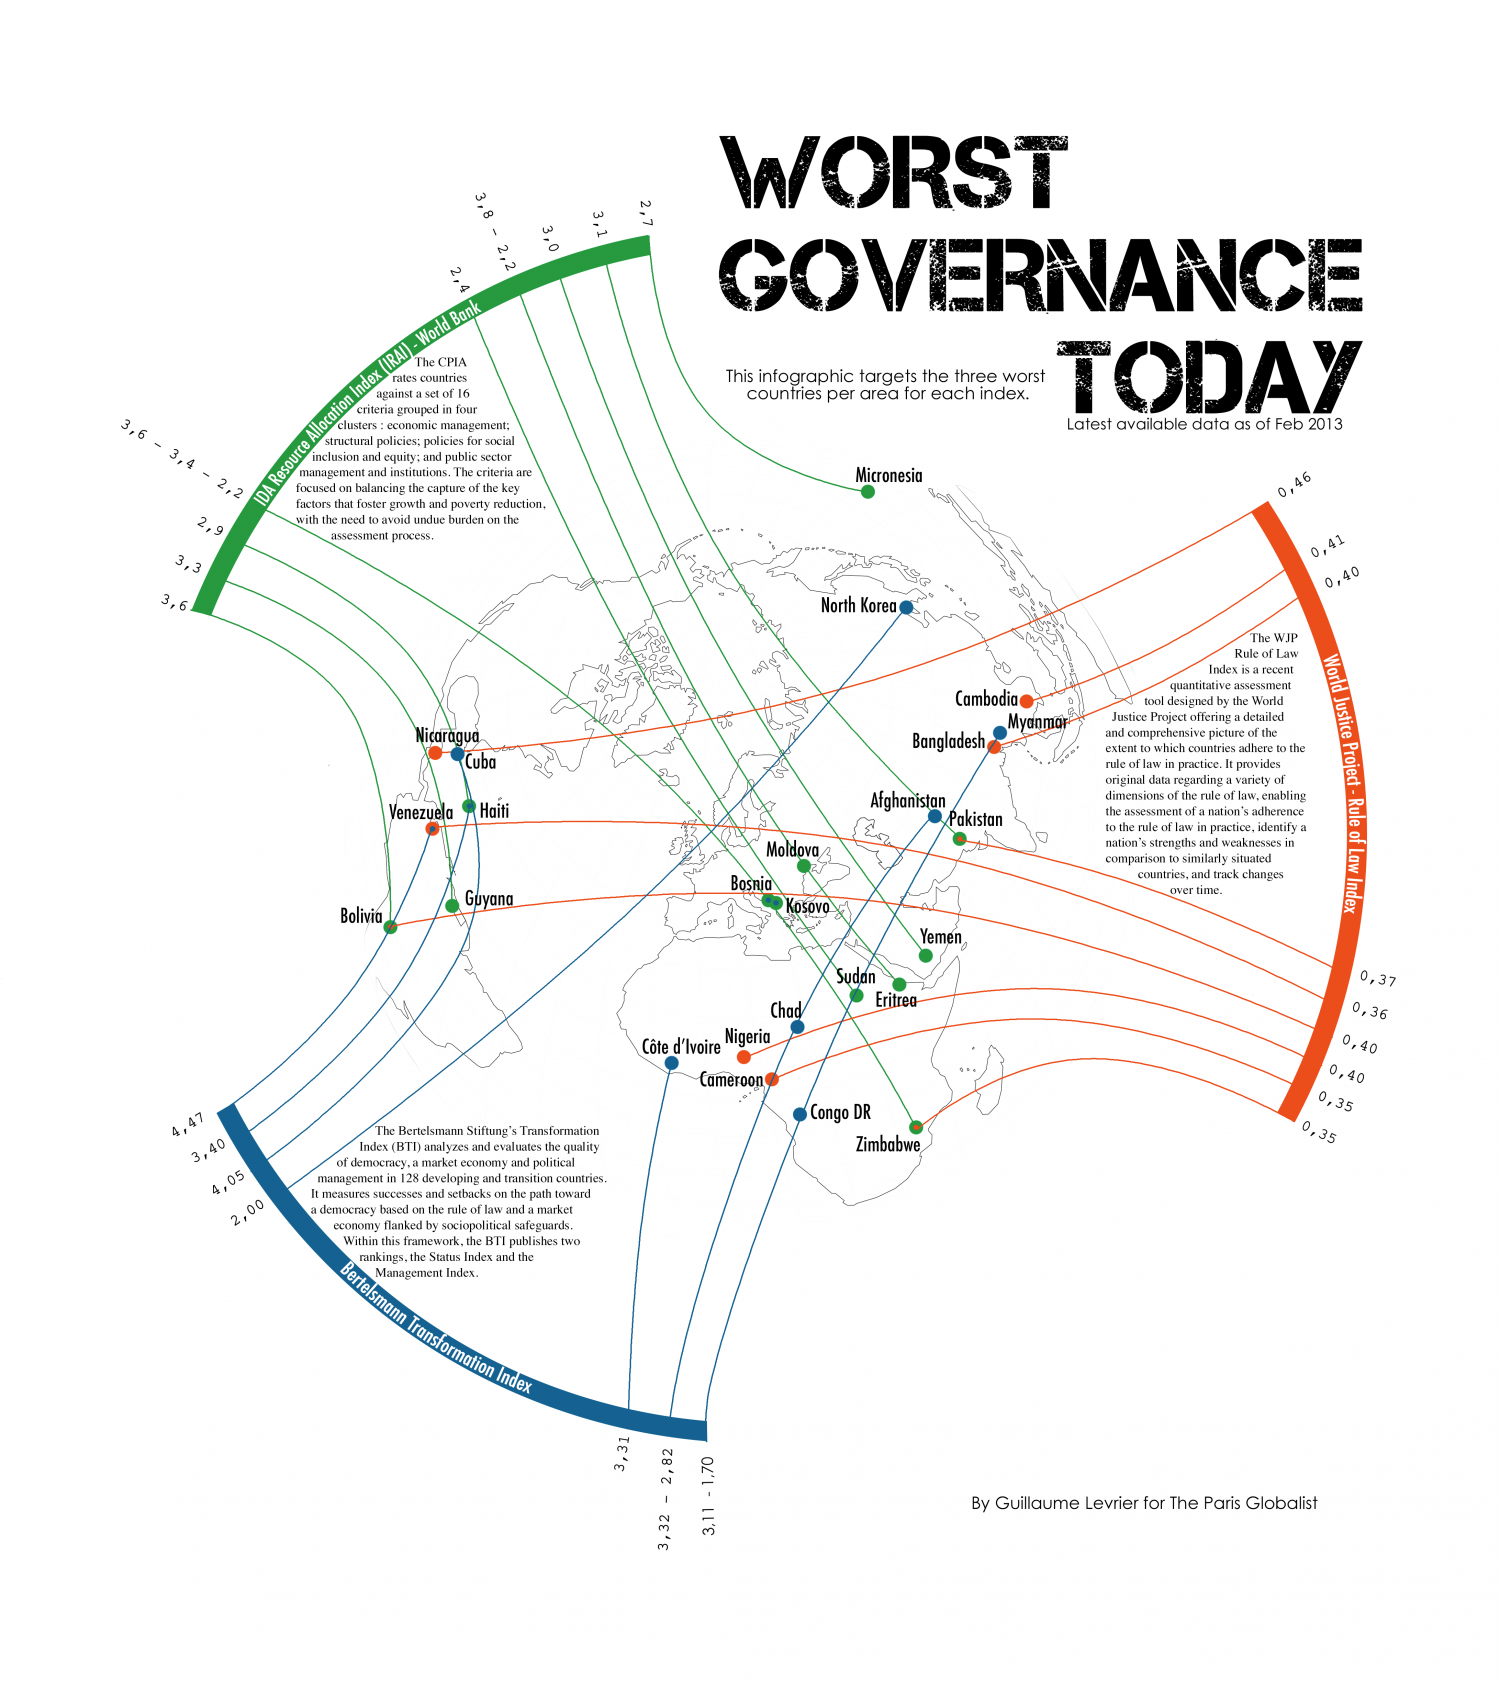 Worst Governance Today Infographic